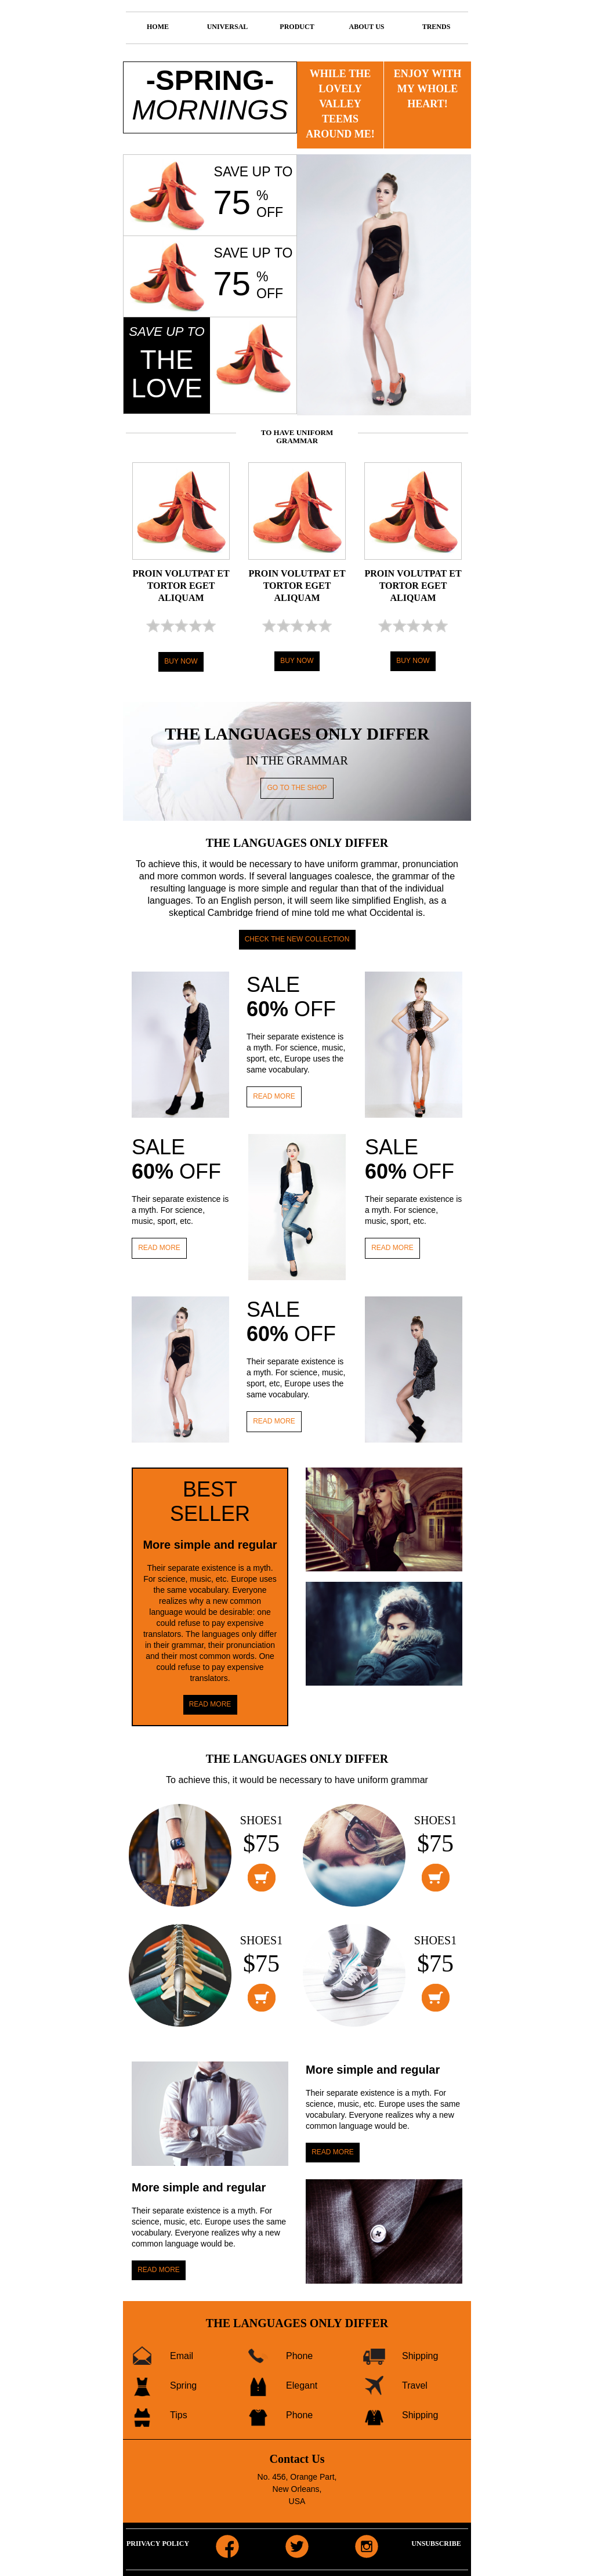 Promotional newsletter email template for fashion industry